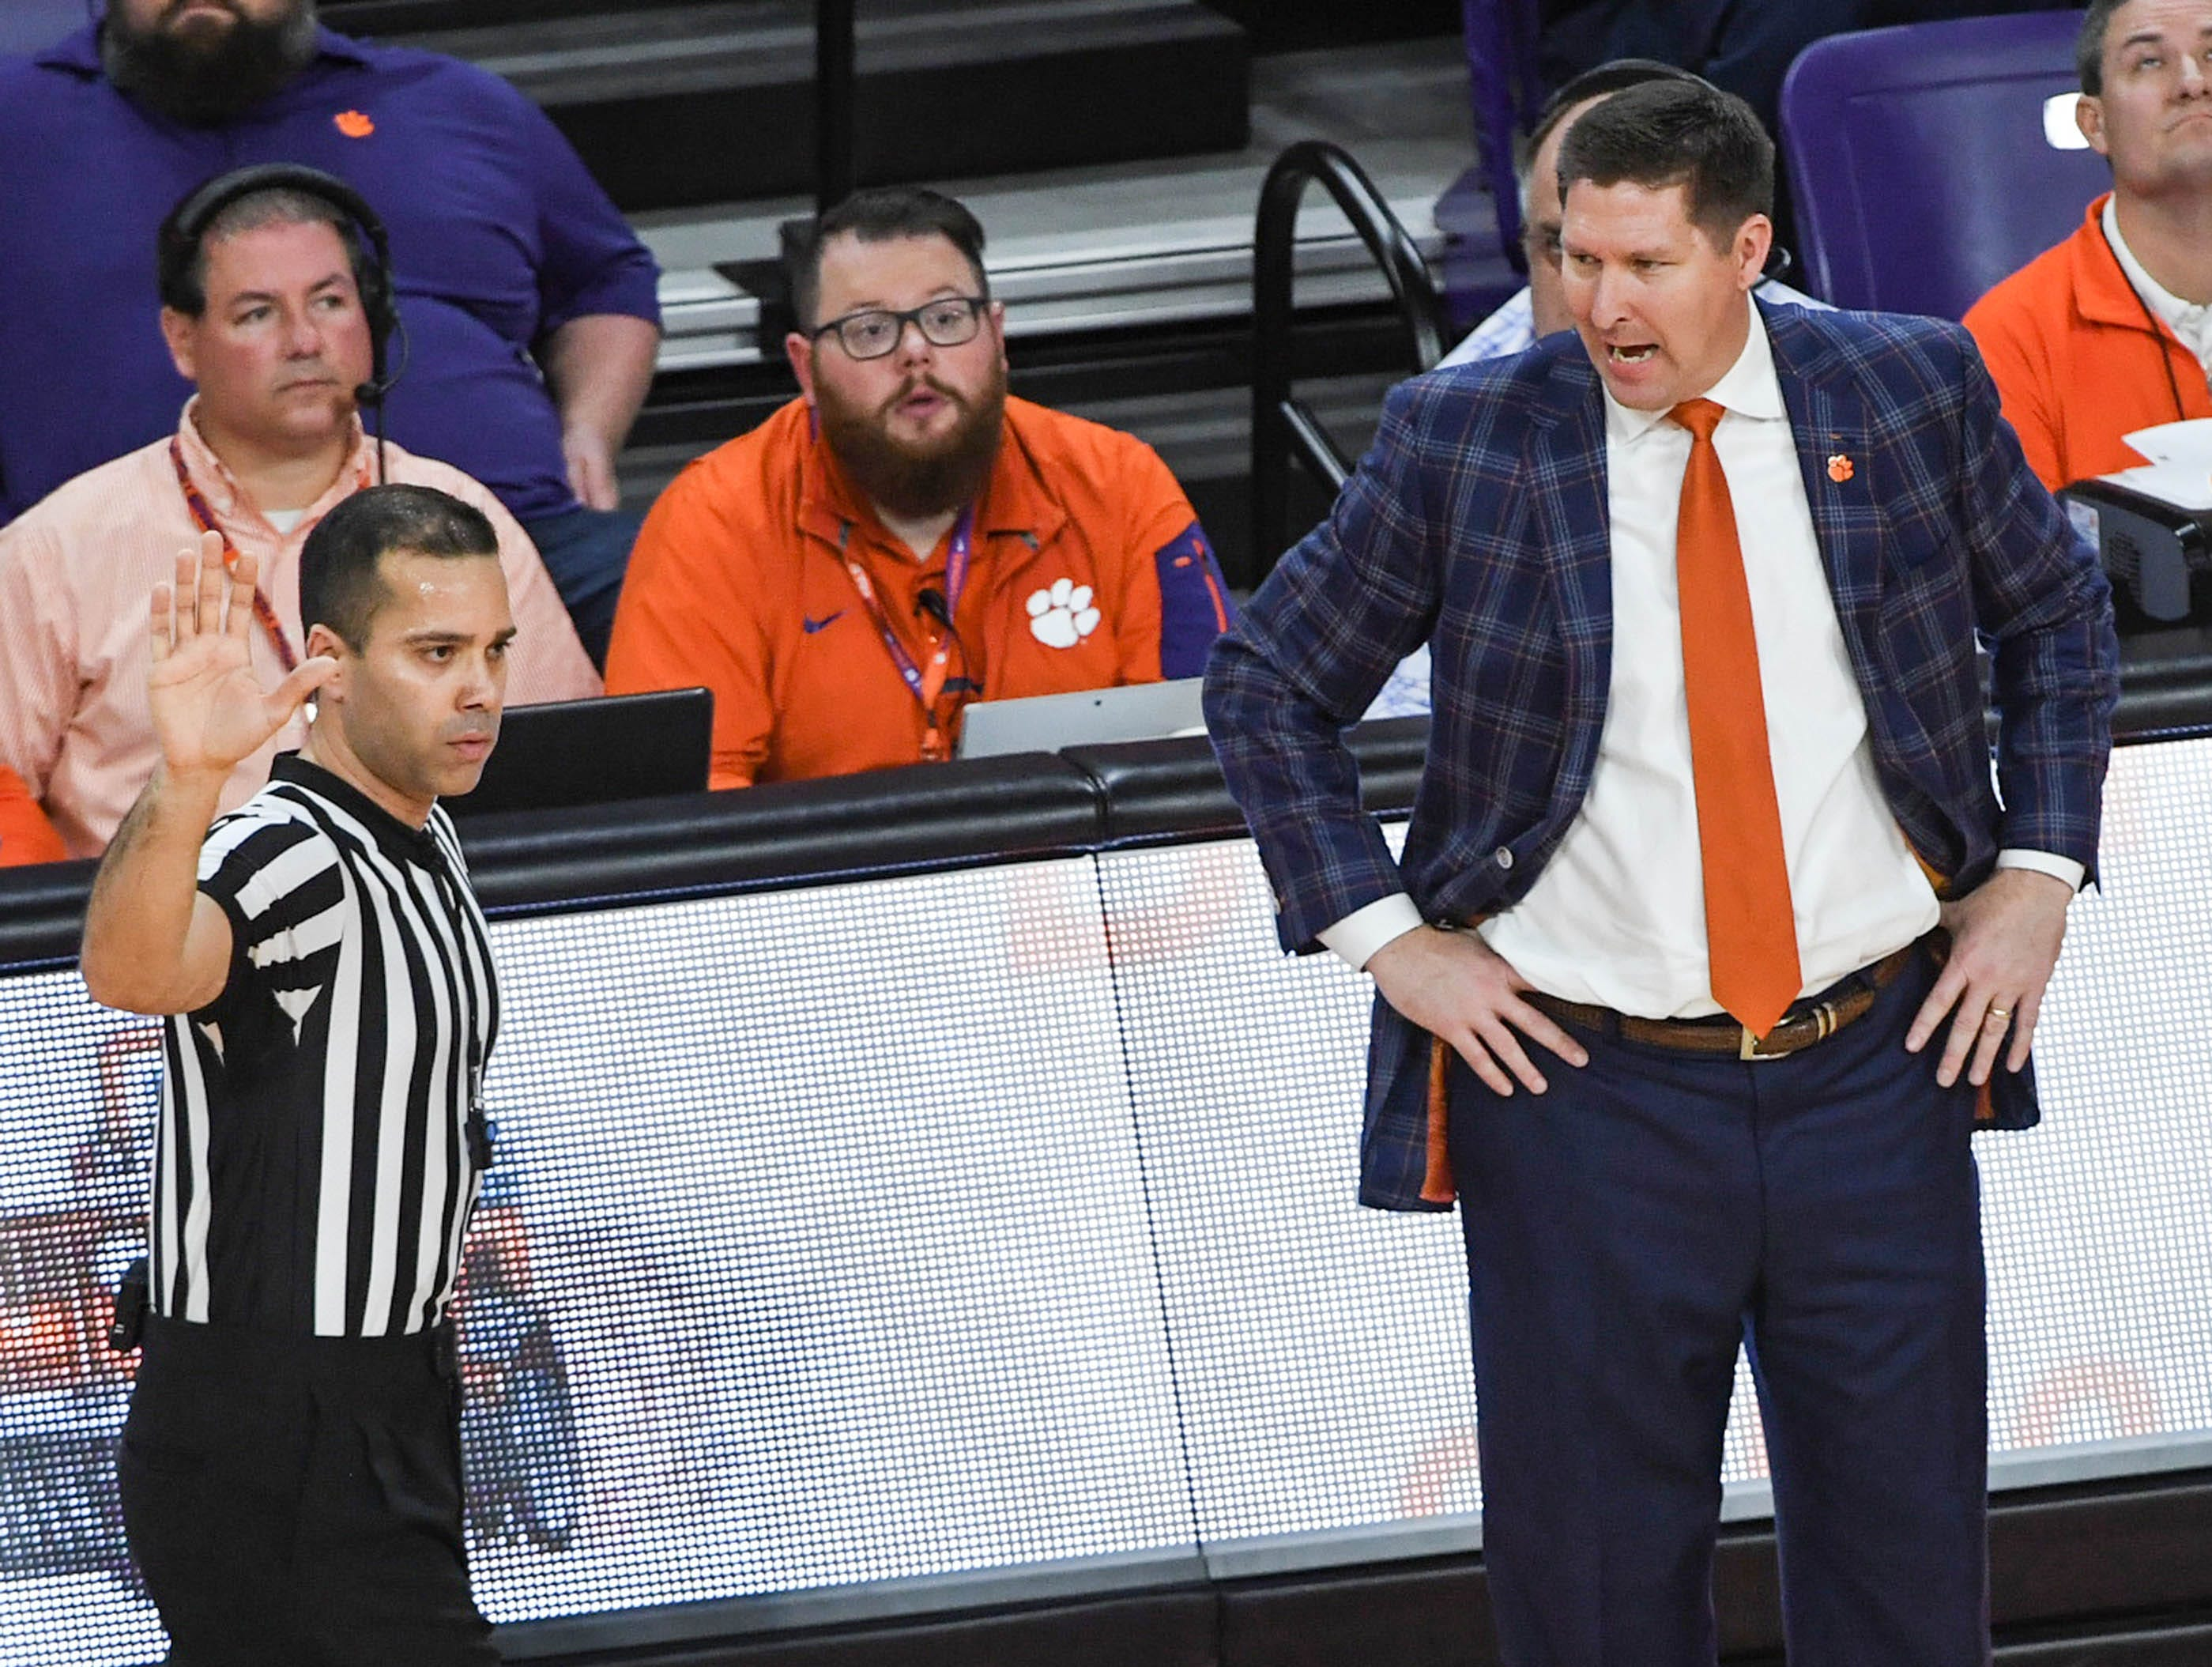 Clemson head coach Brad Brownell argues with a referee in the Syracuse game during the first half in Littlejohn Coliseum in Clemson Saturday, March 9, 2019.